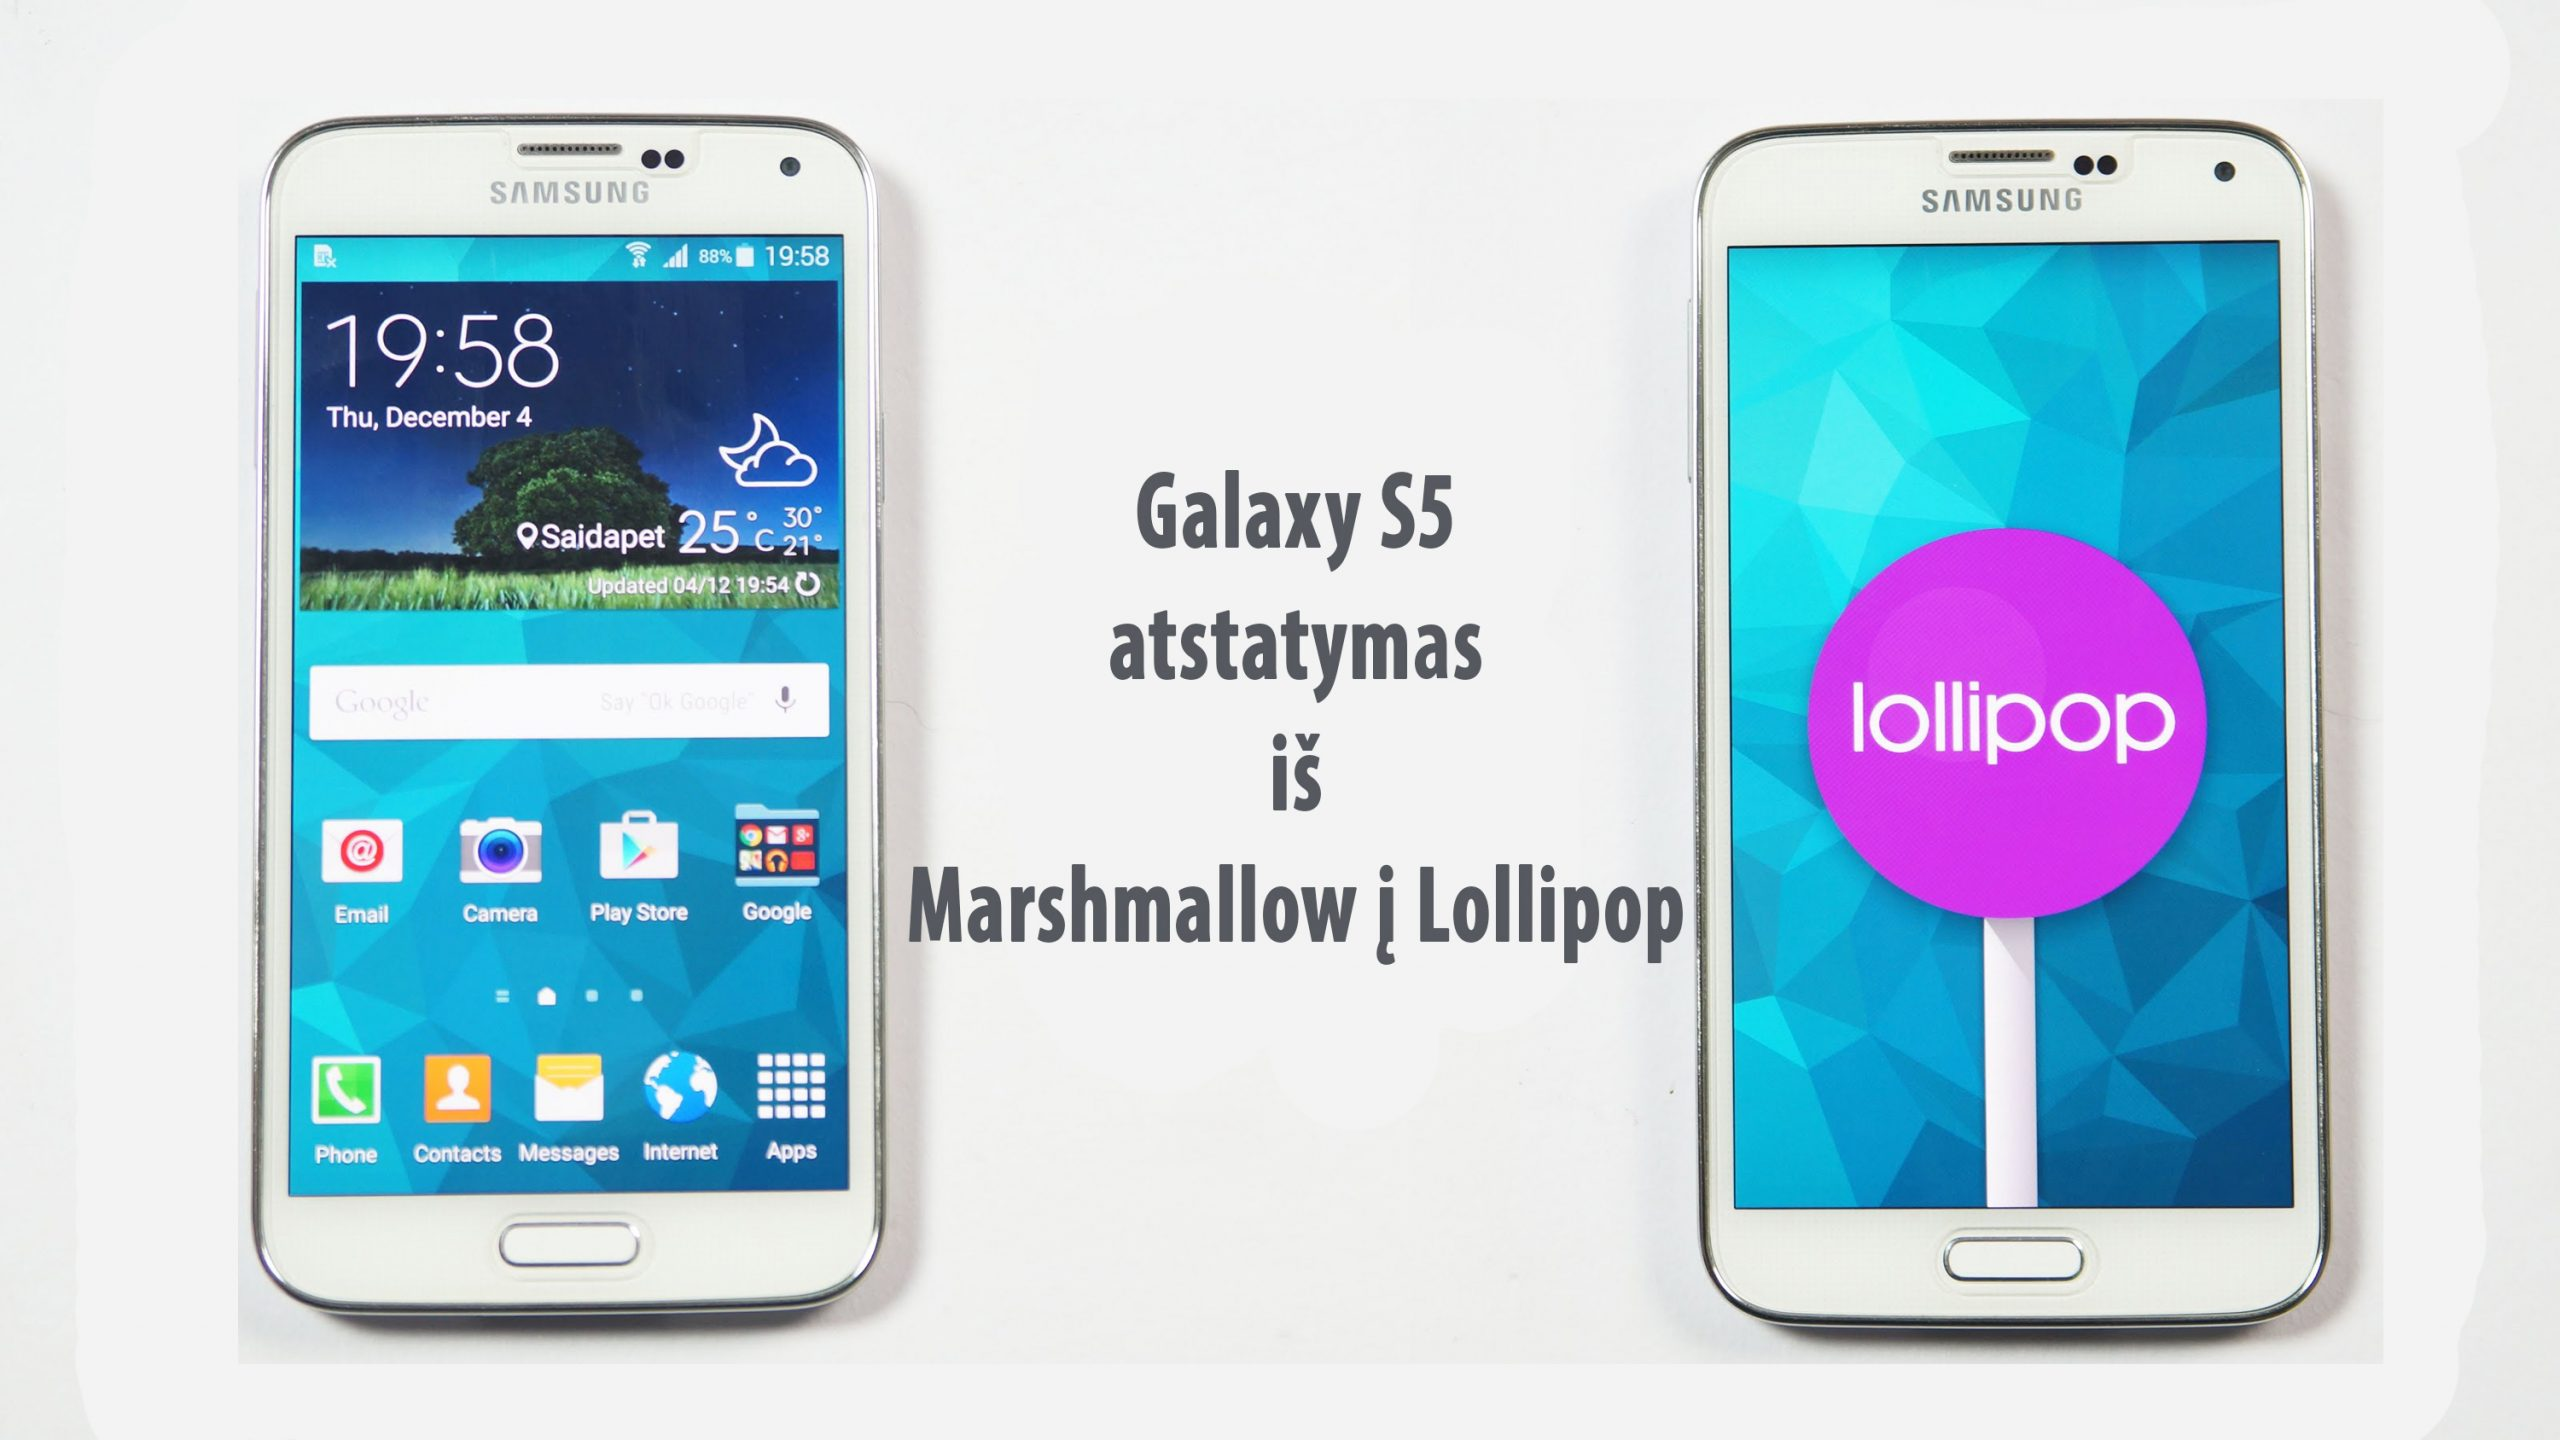 Galaxy-S5-atstatymas-Lollipop-scaled.jpg